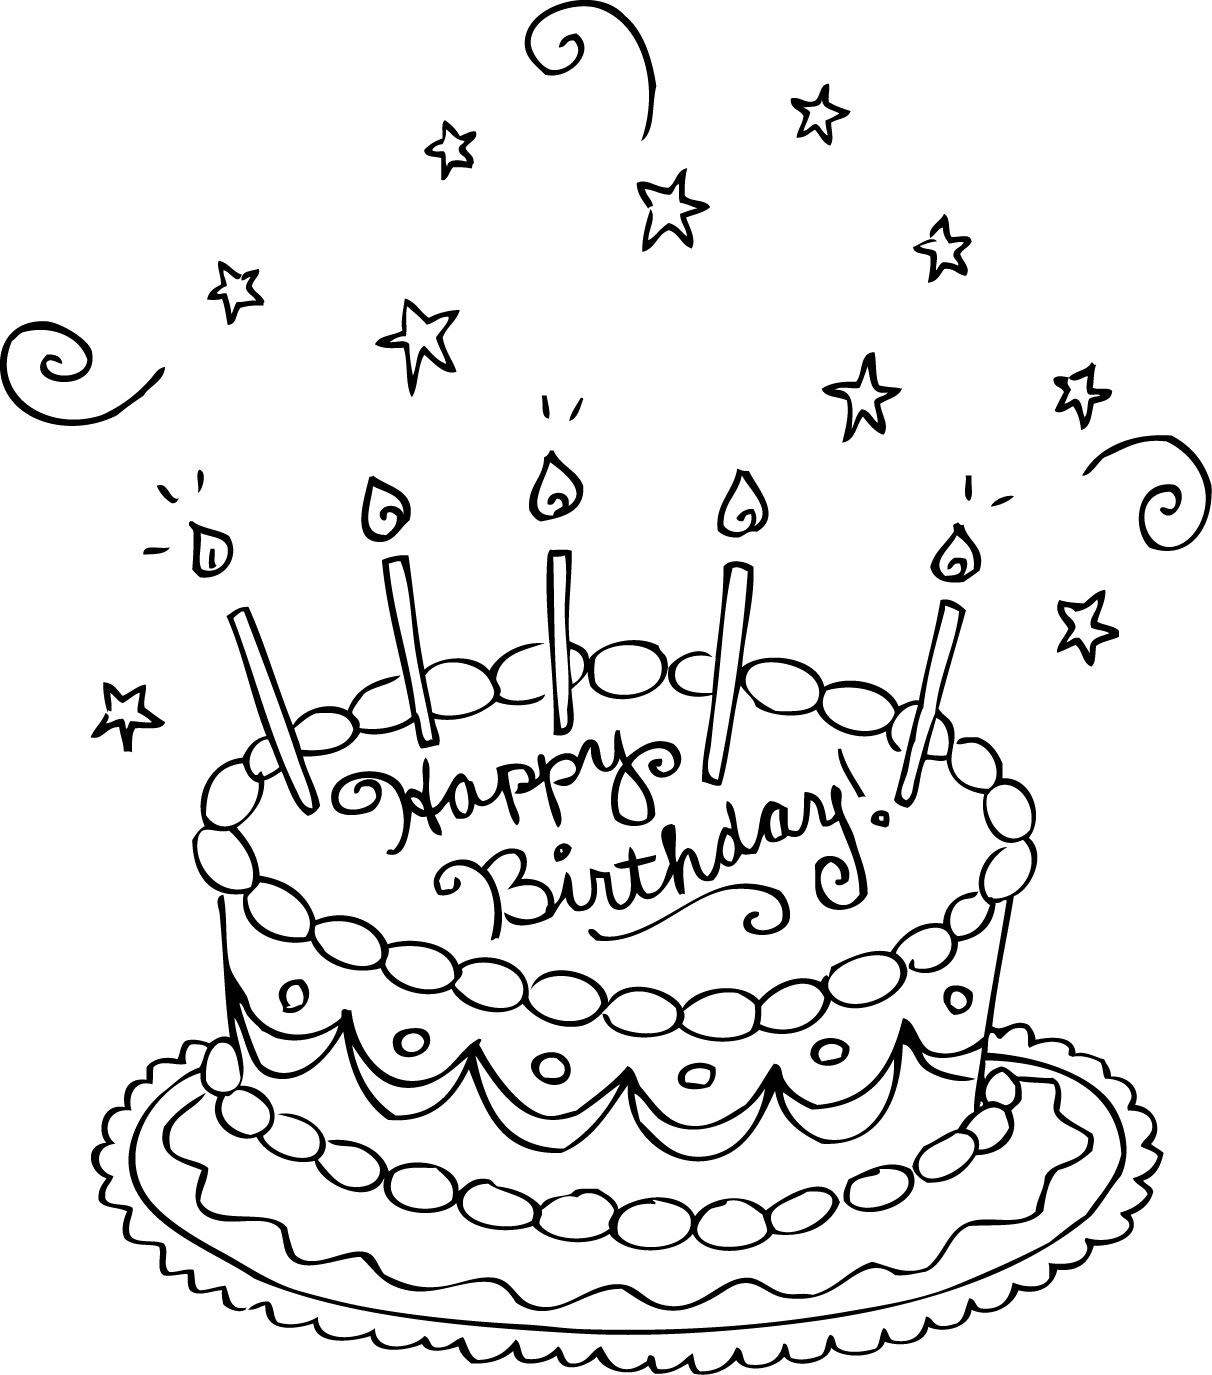 cake coloring pages to print free easy to print cake coloring pages tulamama coloring cake print pages to